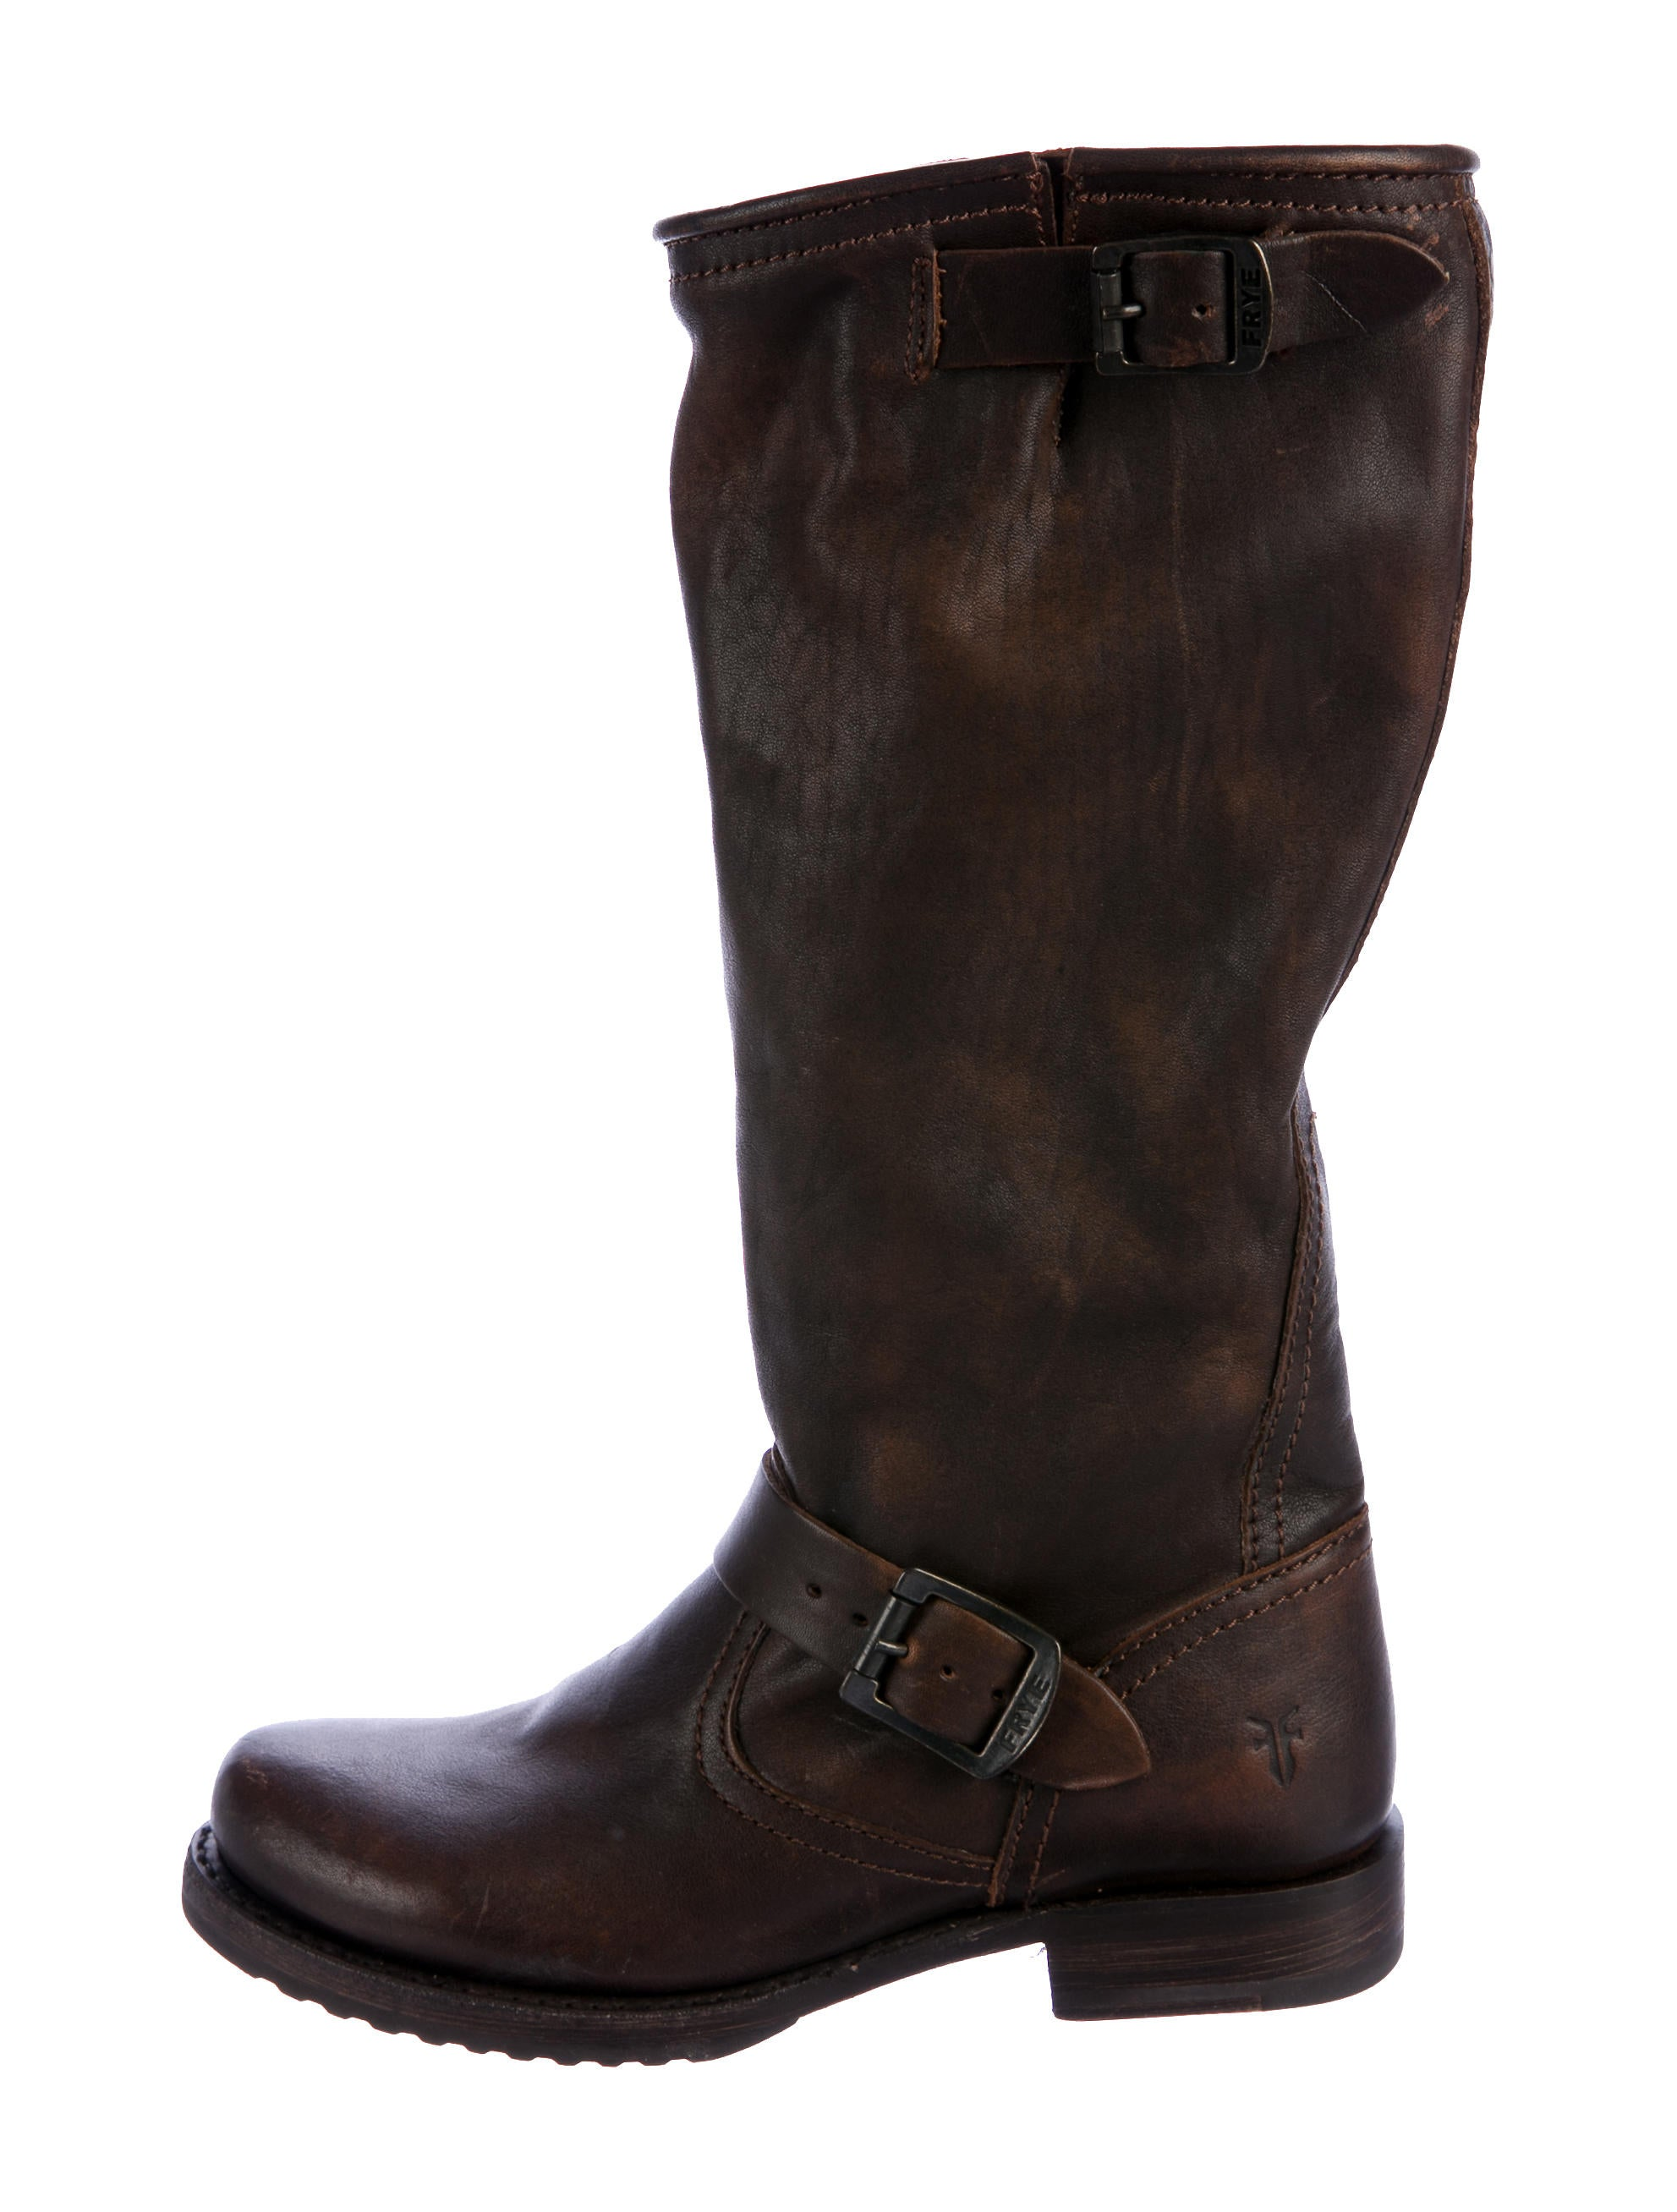 Frye Veronica Mid-Calf Boots w/ Tags outlet big sale free shipping release dates best place sale online wuETJD